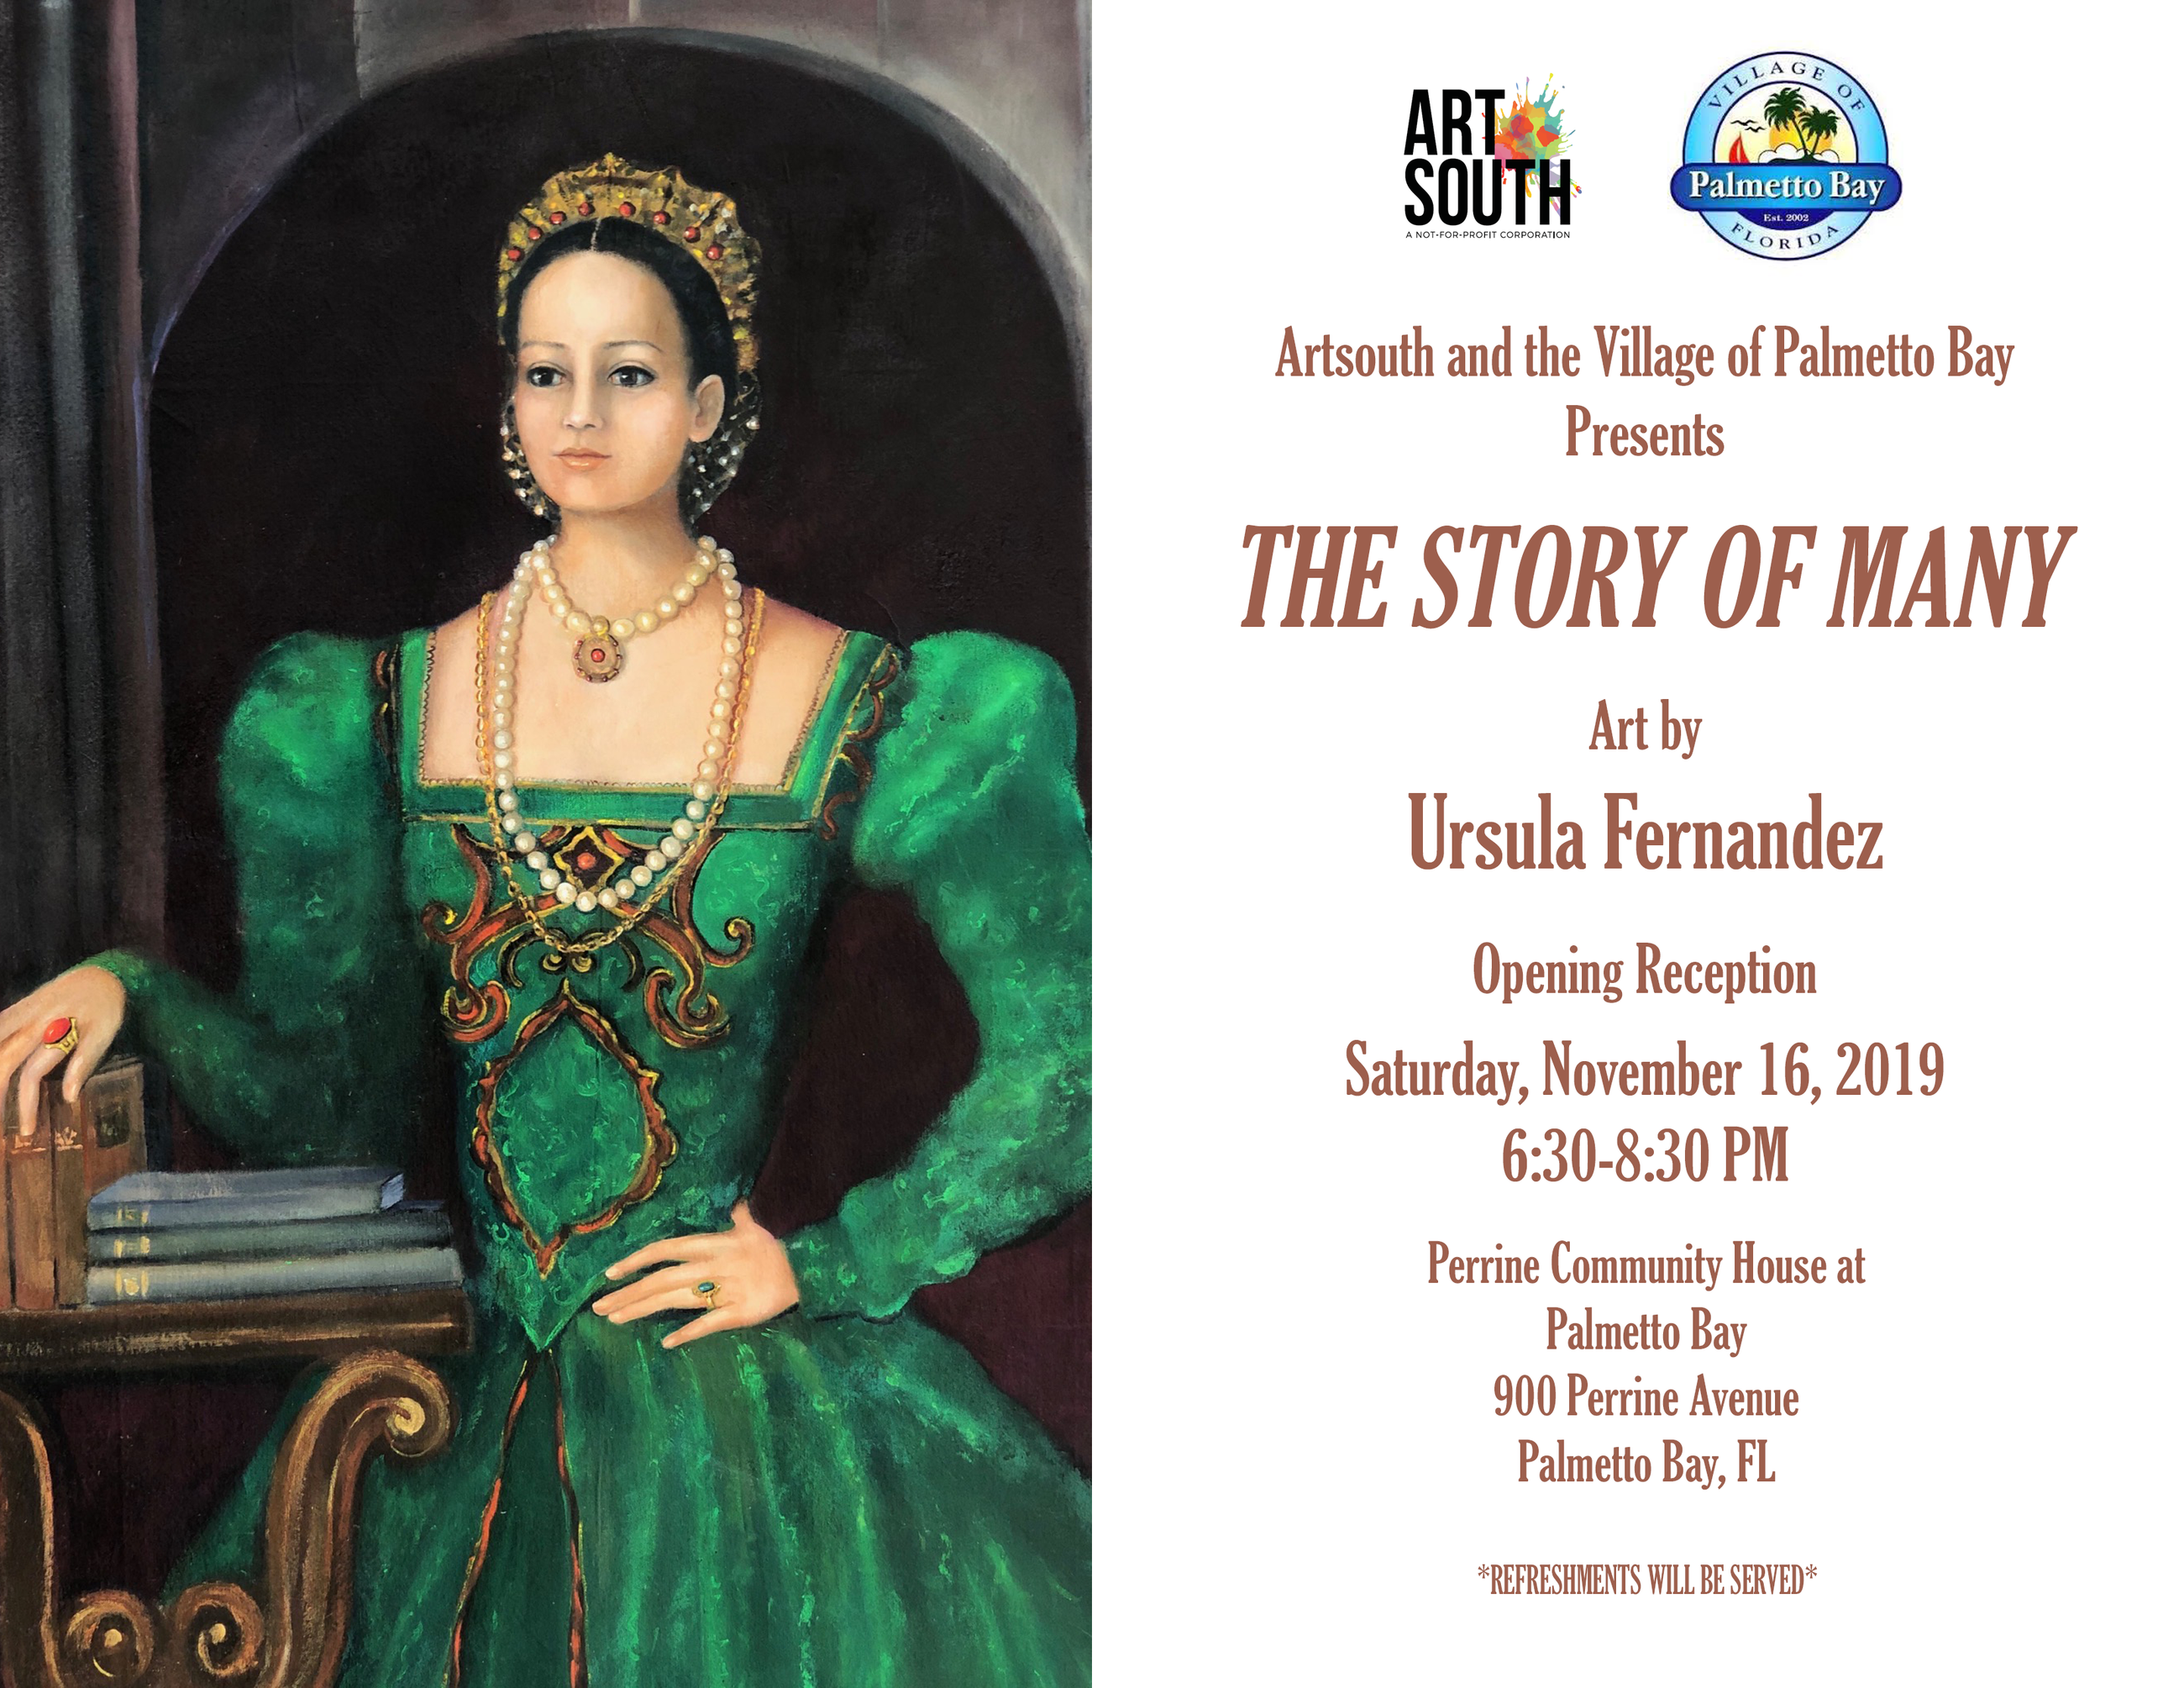 ArtSouth and the Village of Palmetto Bay Presents The Story of Many, Art by Ursula Fernandez. Openin